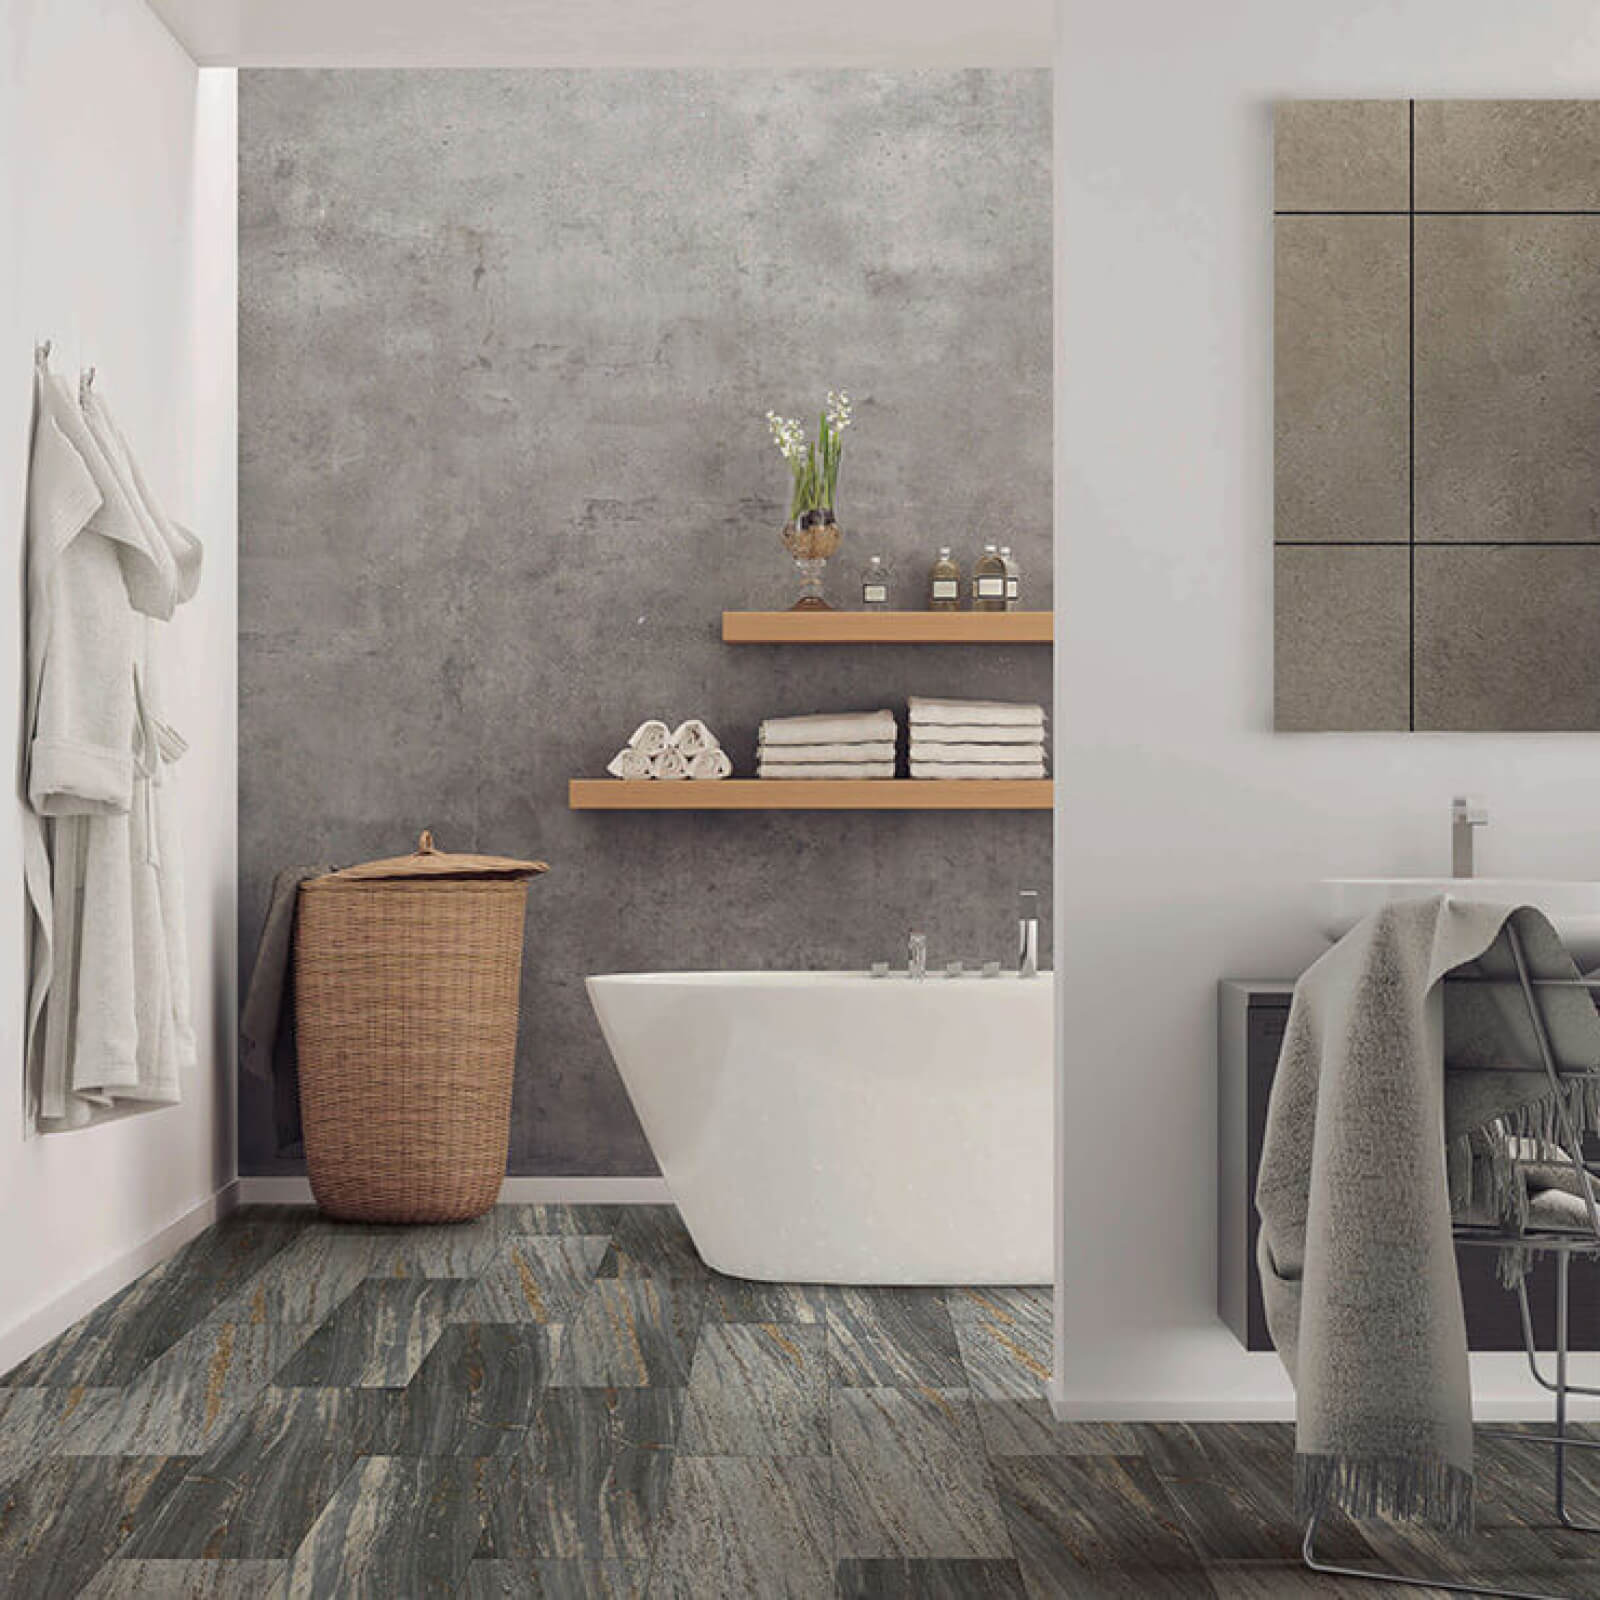 Bathroom flooring | Webb Carpet